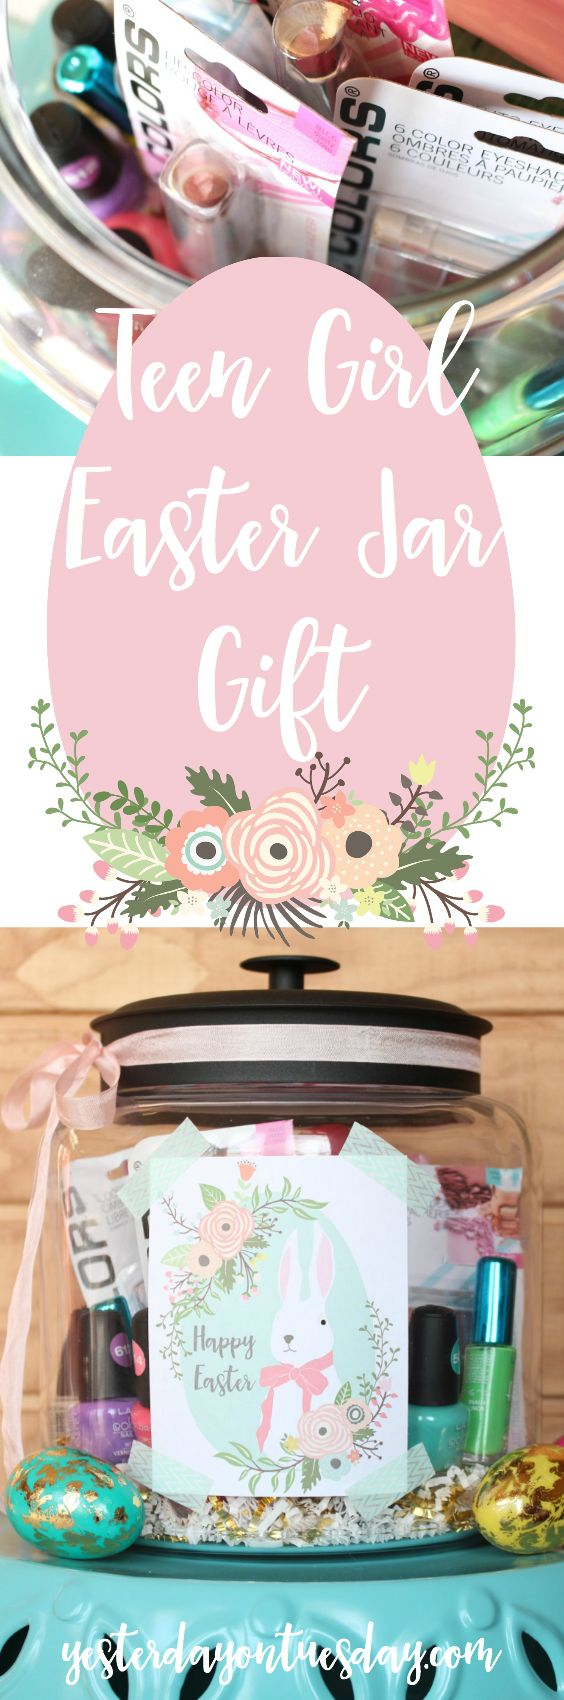 56 best mason jars easter images on pinterest easter crafts teen girl easter jar gift pretty easter present idea for teen girls including easter printables negle Image collections